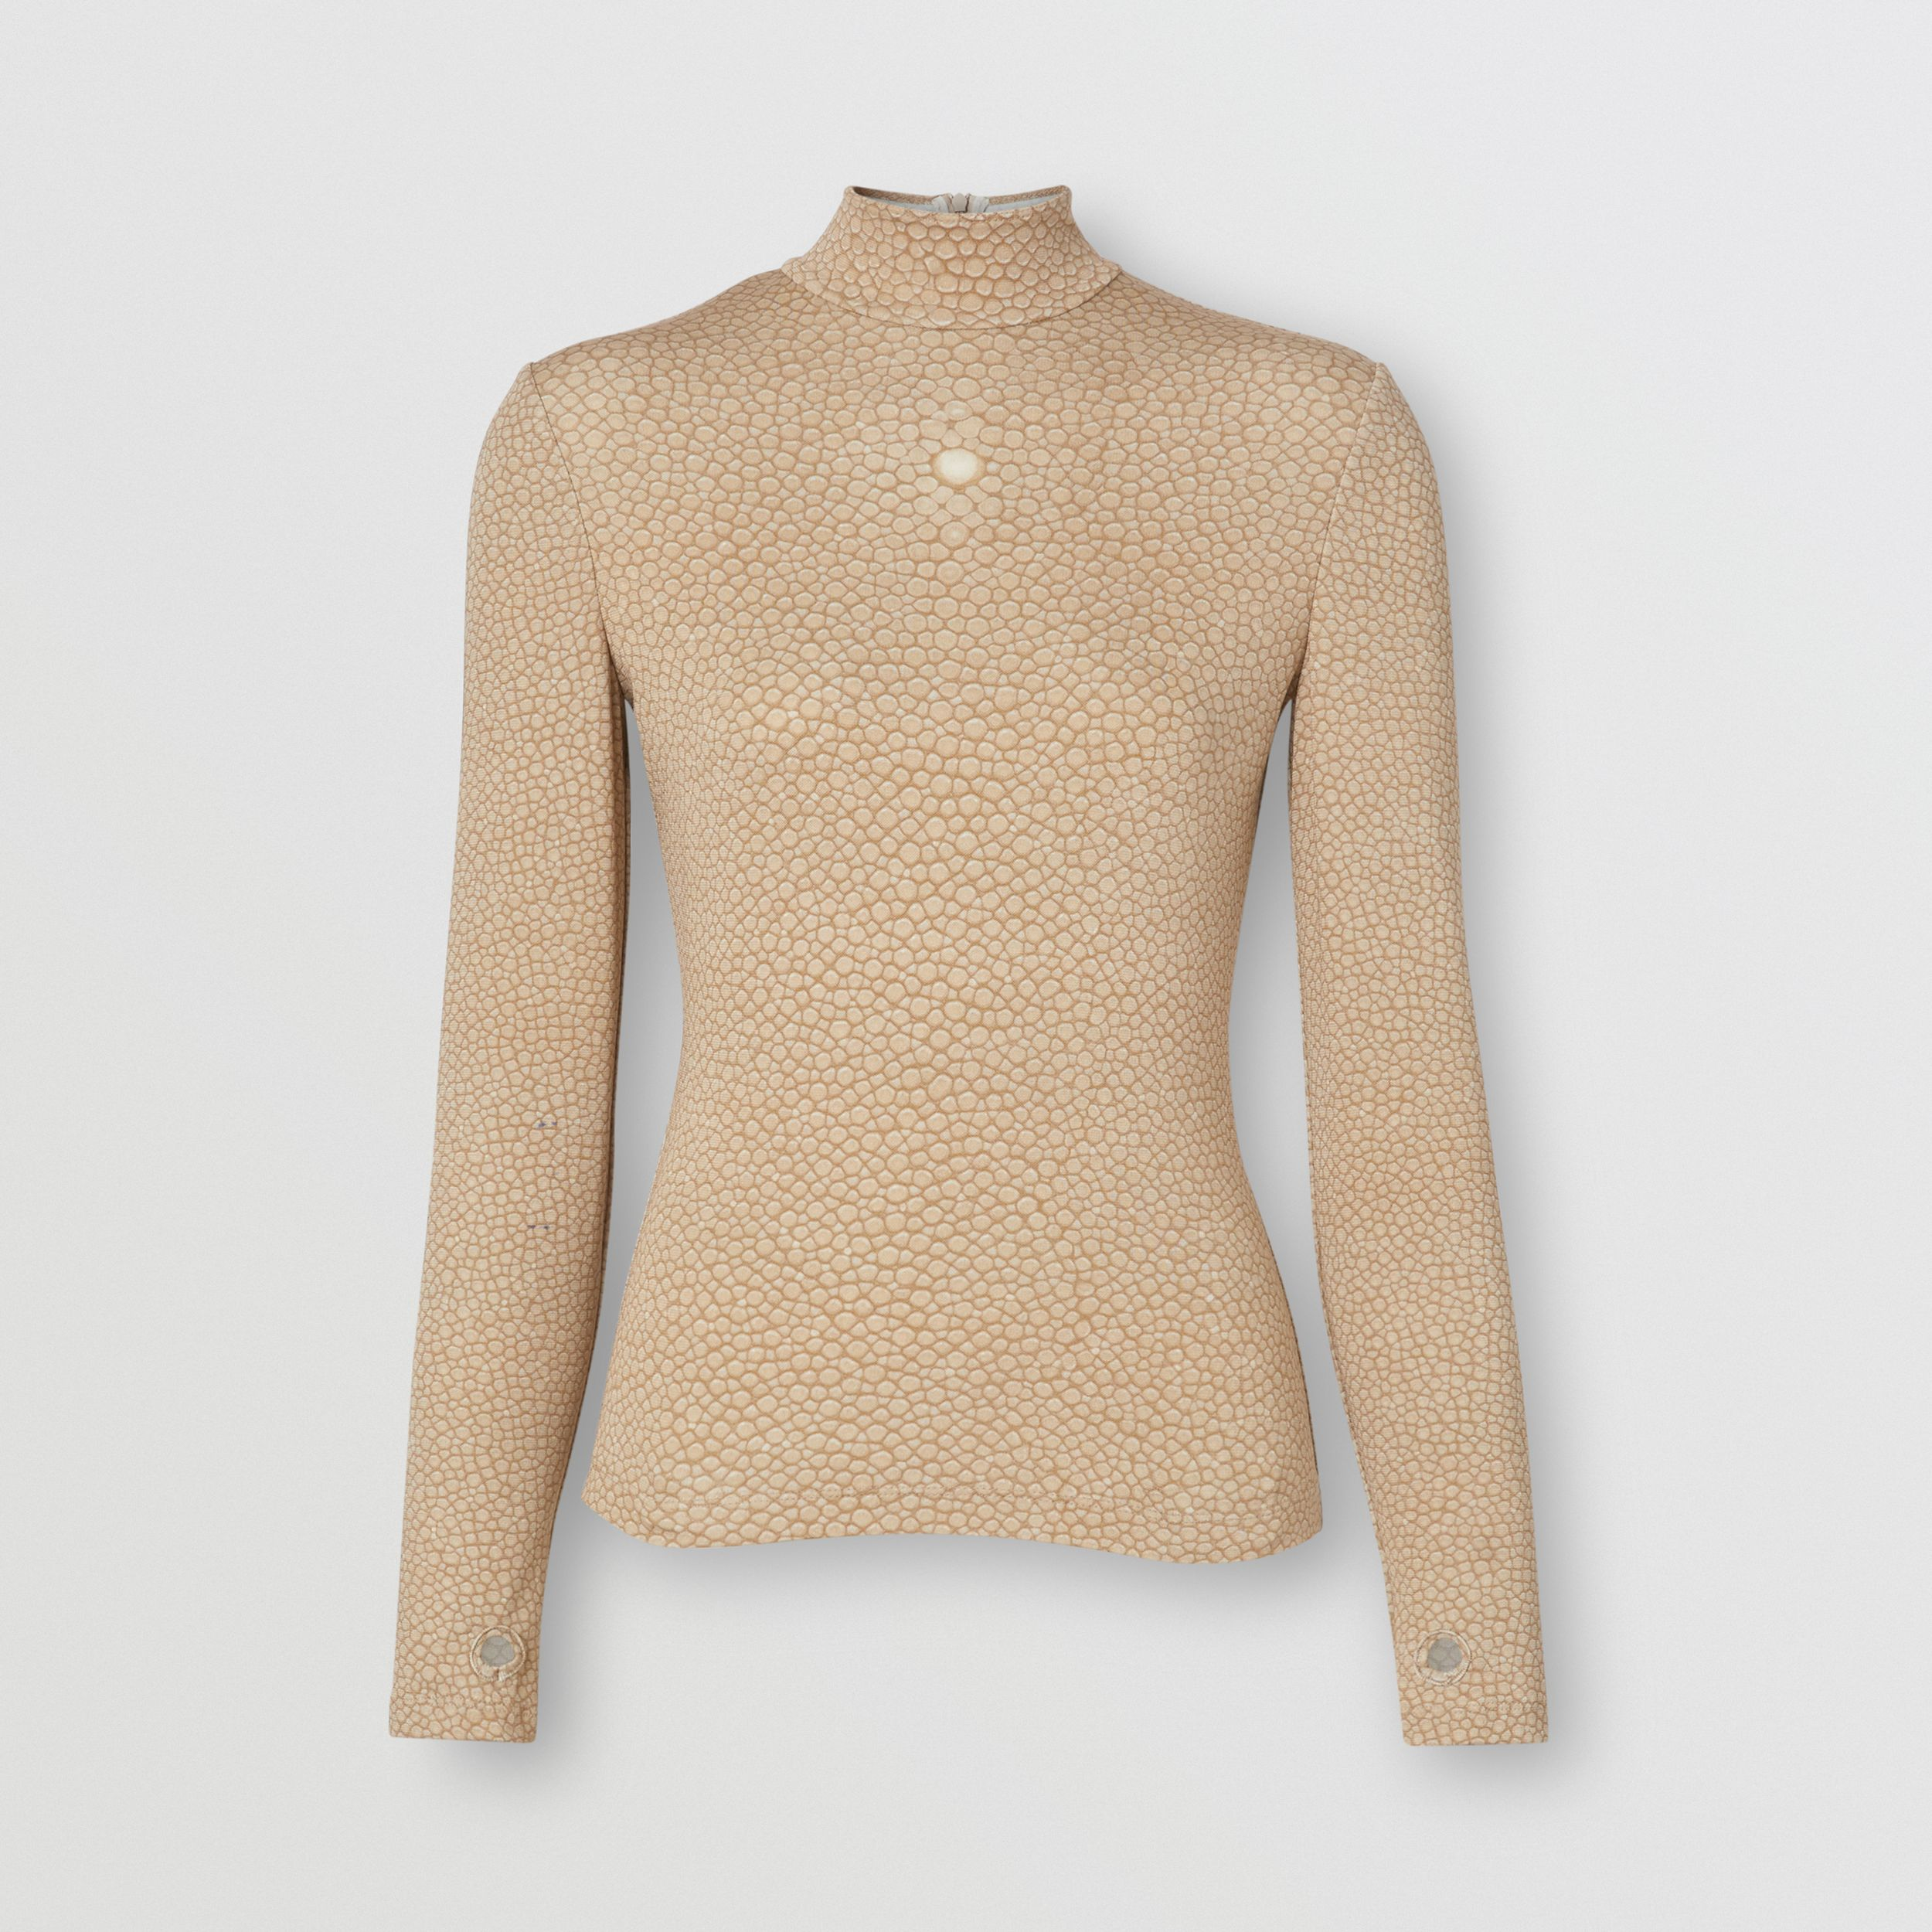 Fish-scale Print Stretch Jersey Turtleneck Top in Light Sand - Women | Burberry - 4